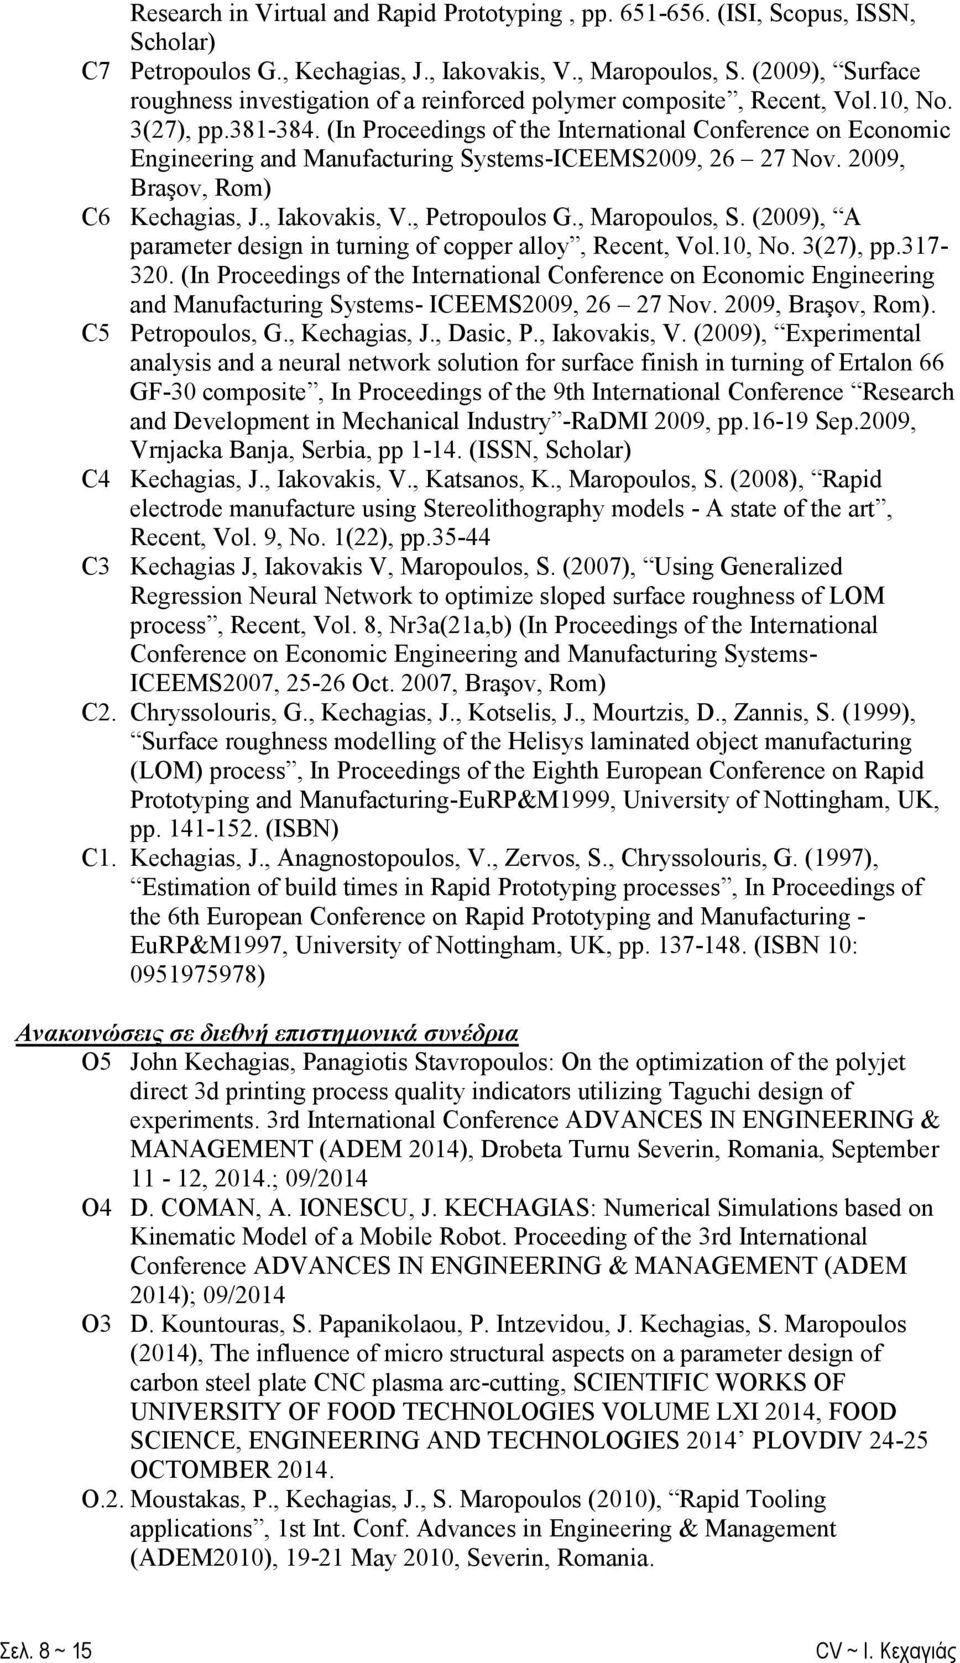 (In Proceedings of the International Conference on Economic Engineering and Manufacturing Systems-ICEEMS2009, 26 27 Nov. 2009, Braşov, Rom) C6 Kechagias, J., Iakovakis, V., Petropoulos G.